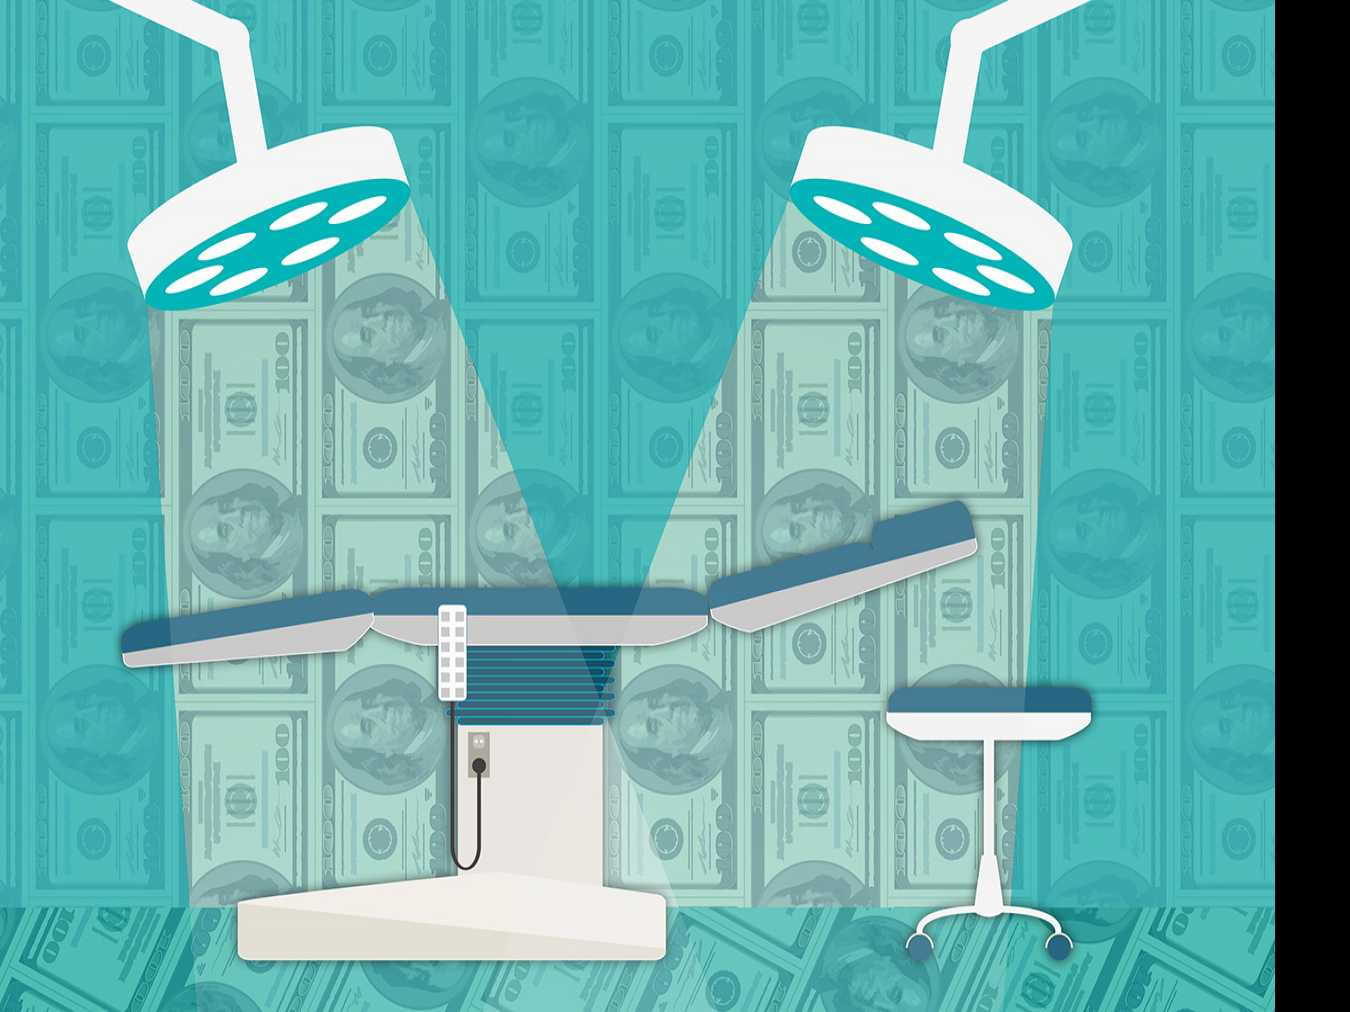 One Implant, Two Prices — It Depends on Who's Paying